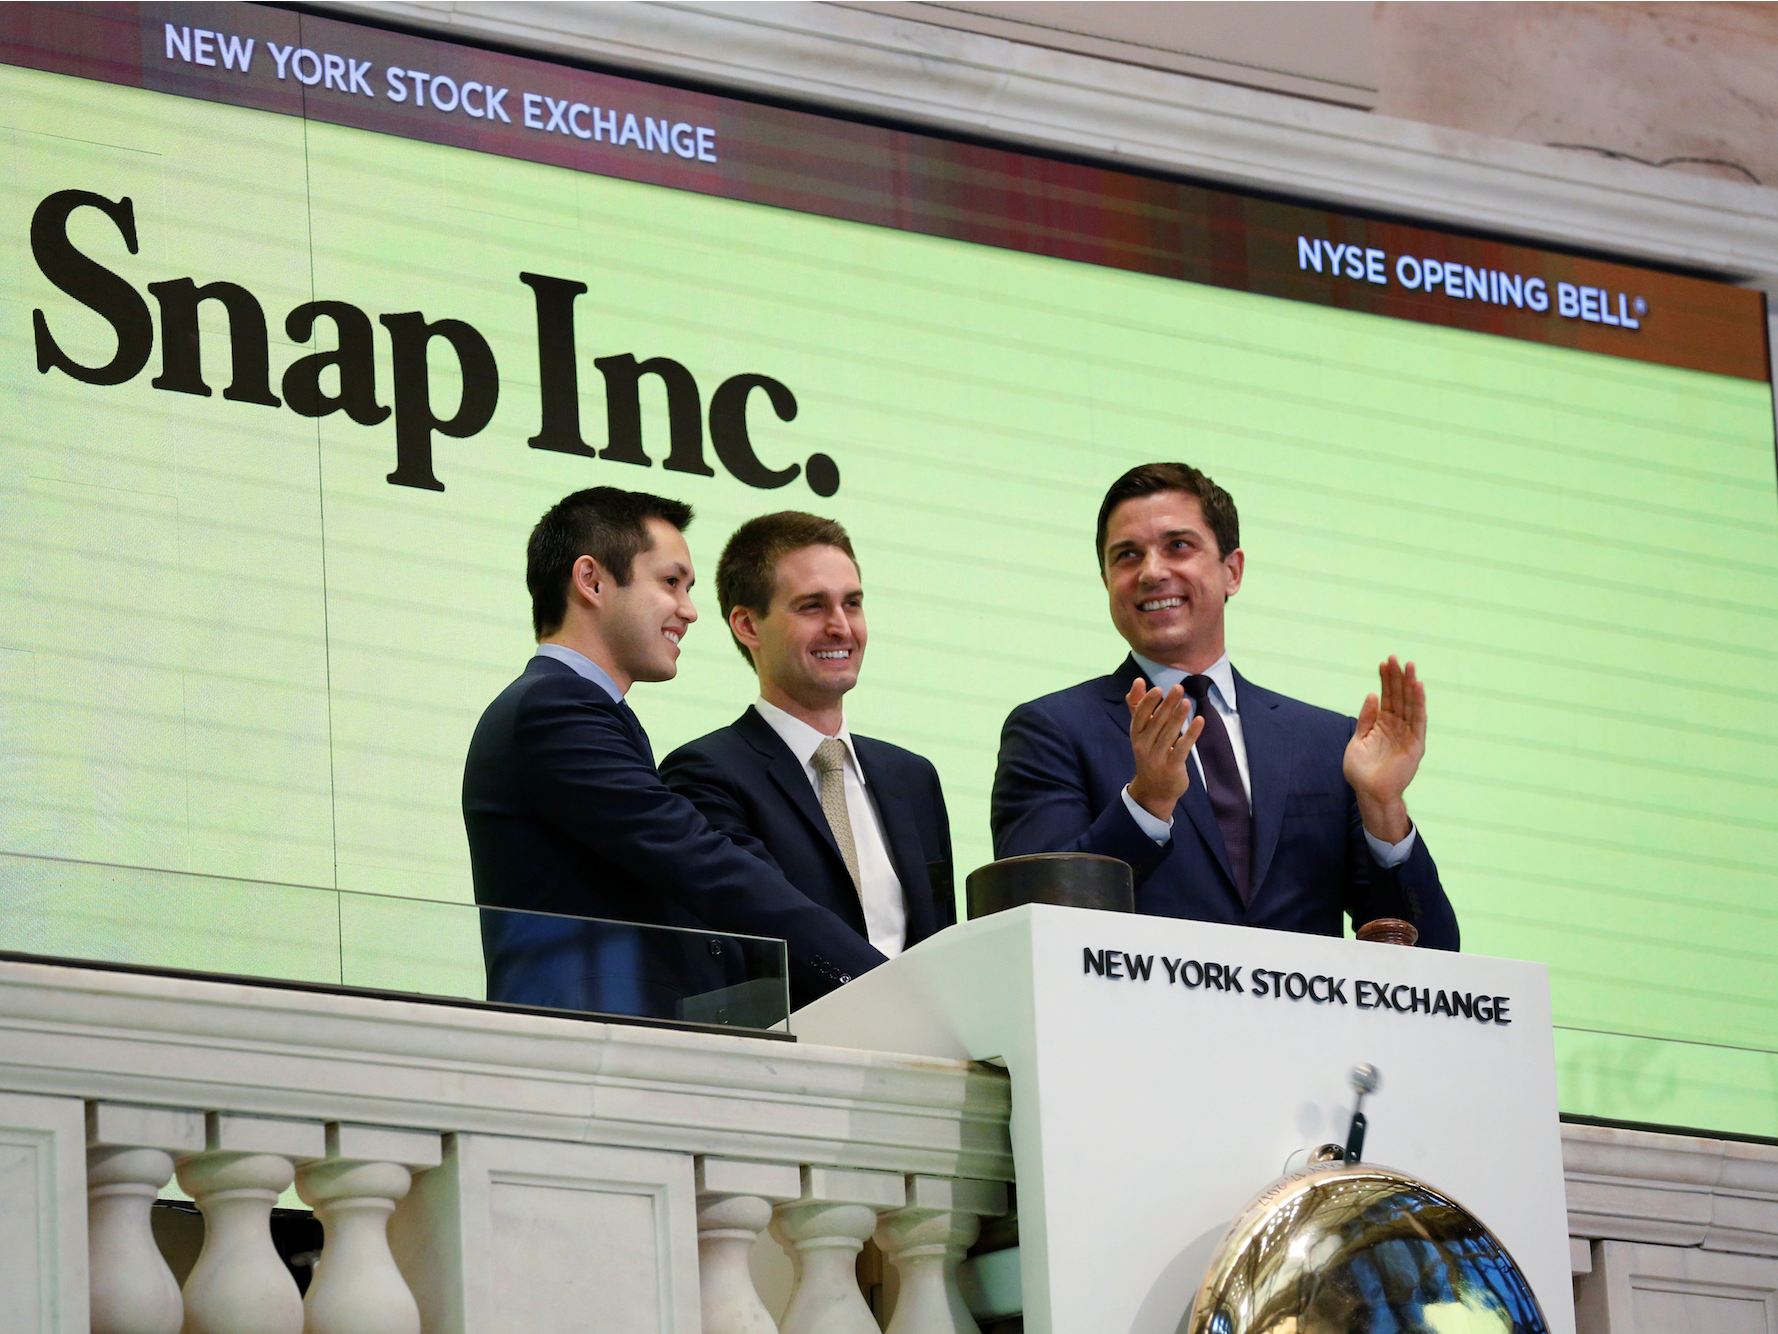 Snap is rallying after Credit Suisse raises its price